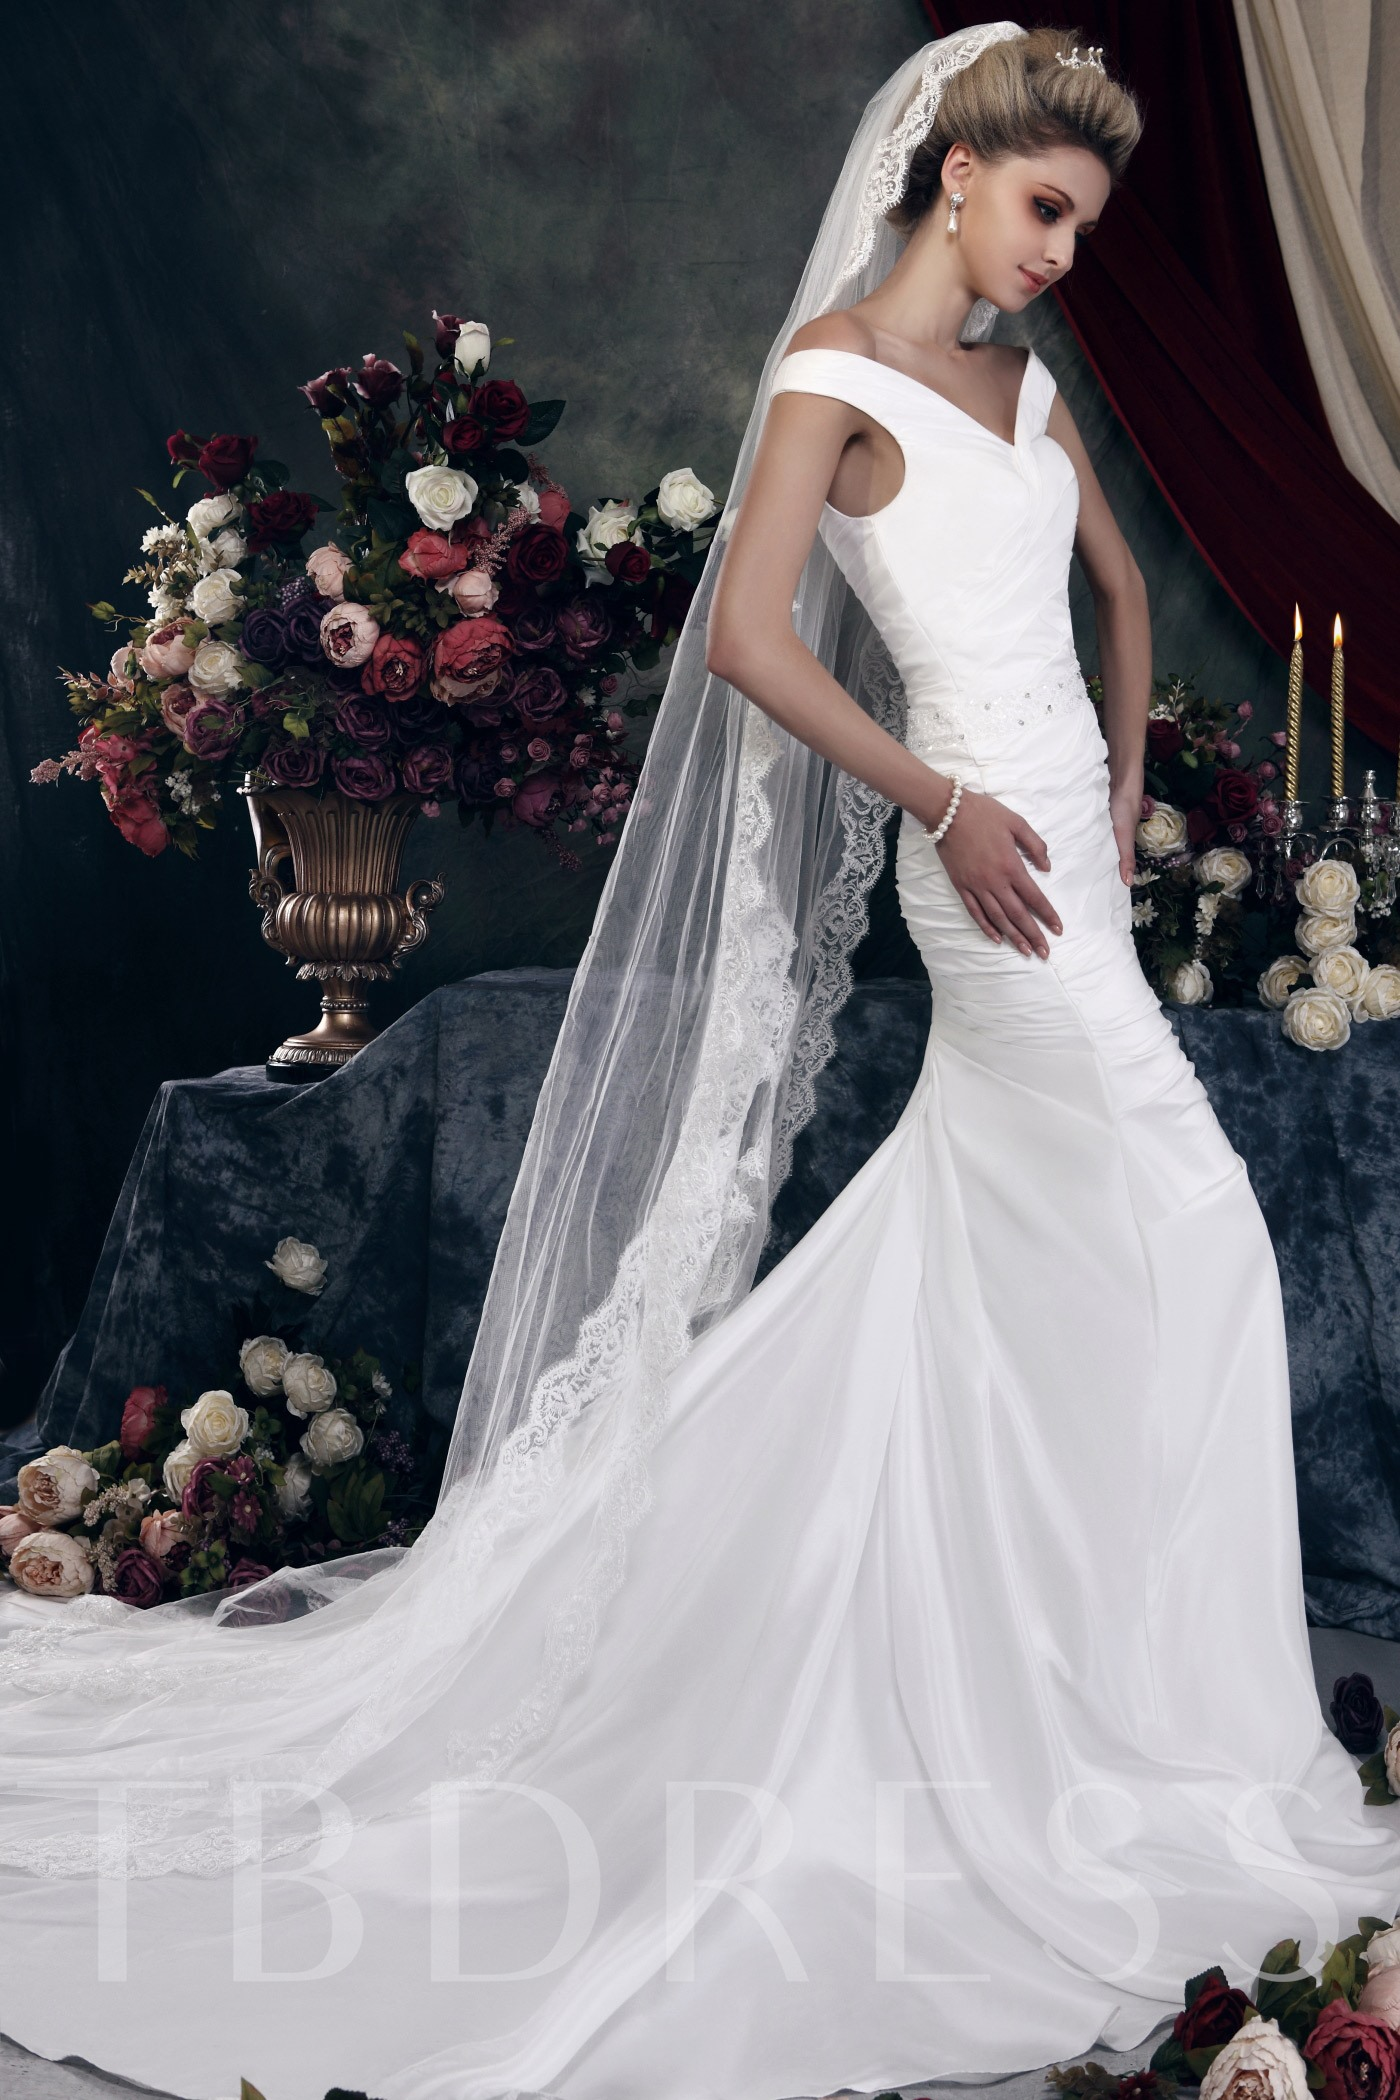 1-Layer Chapel Wedding Bridal Veil with Floral Edge